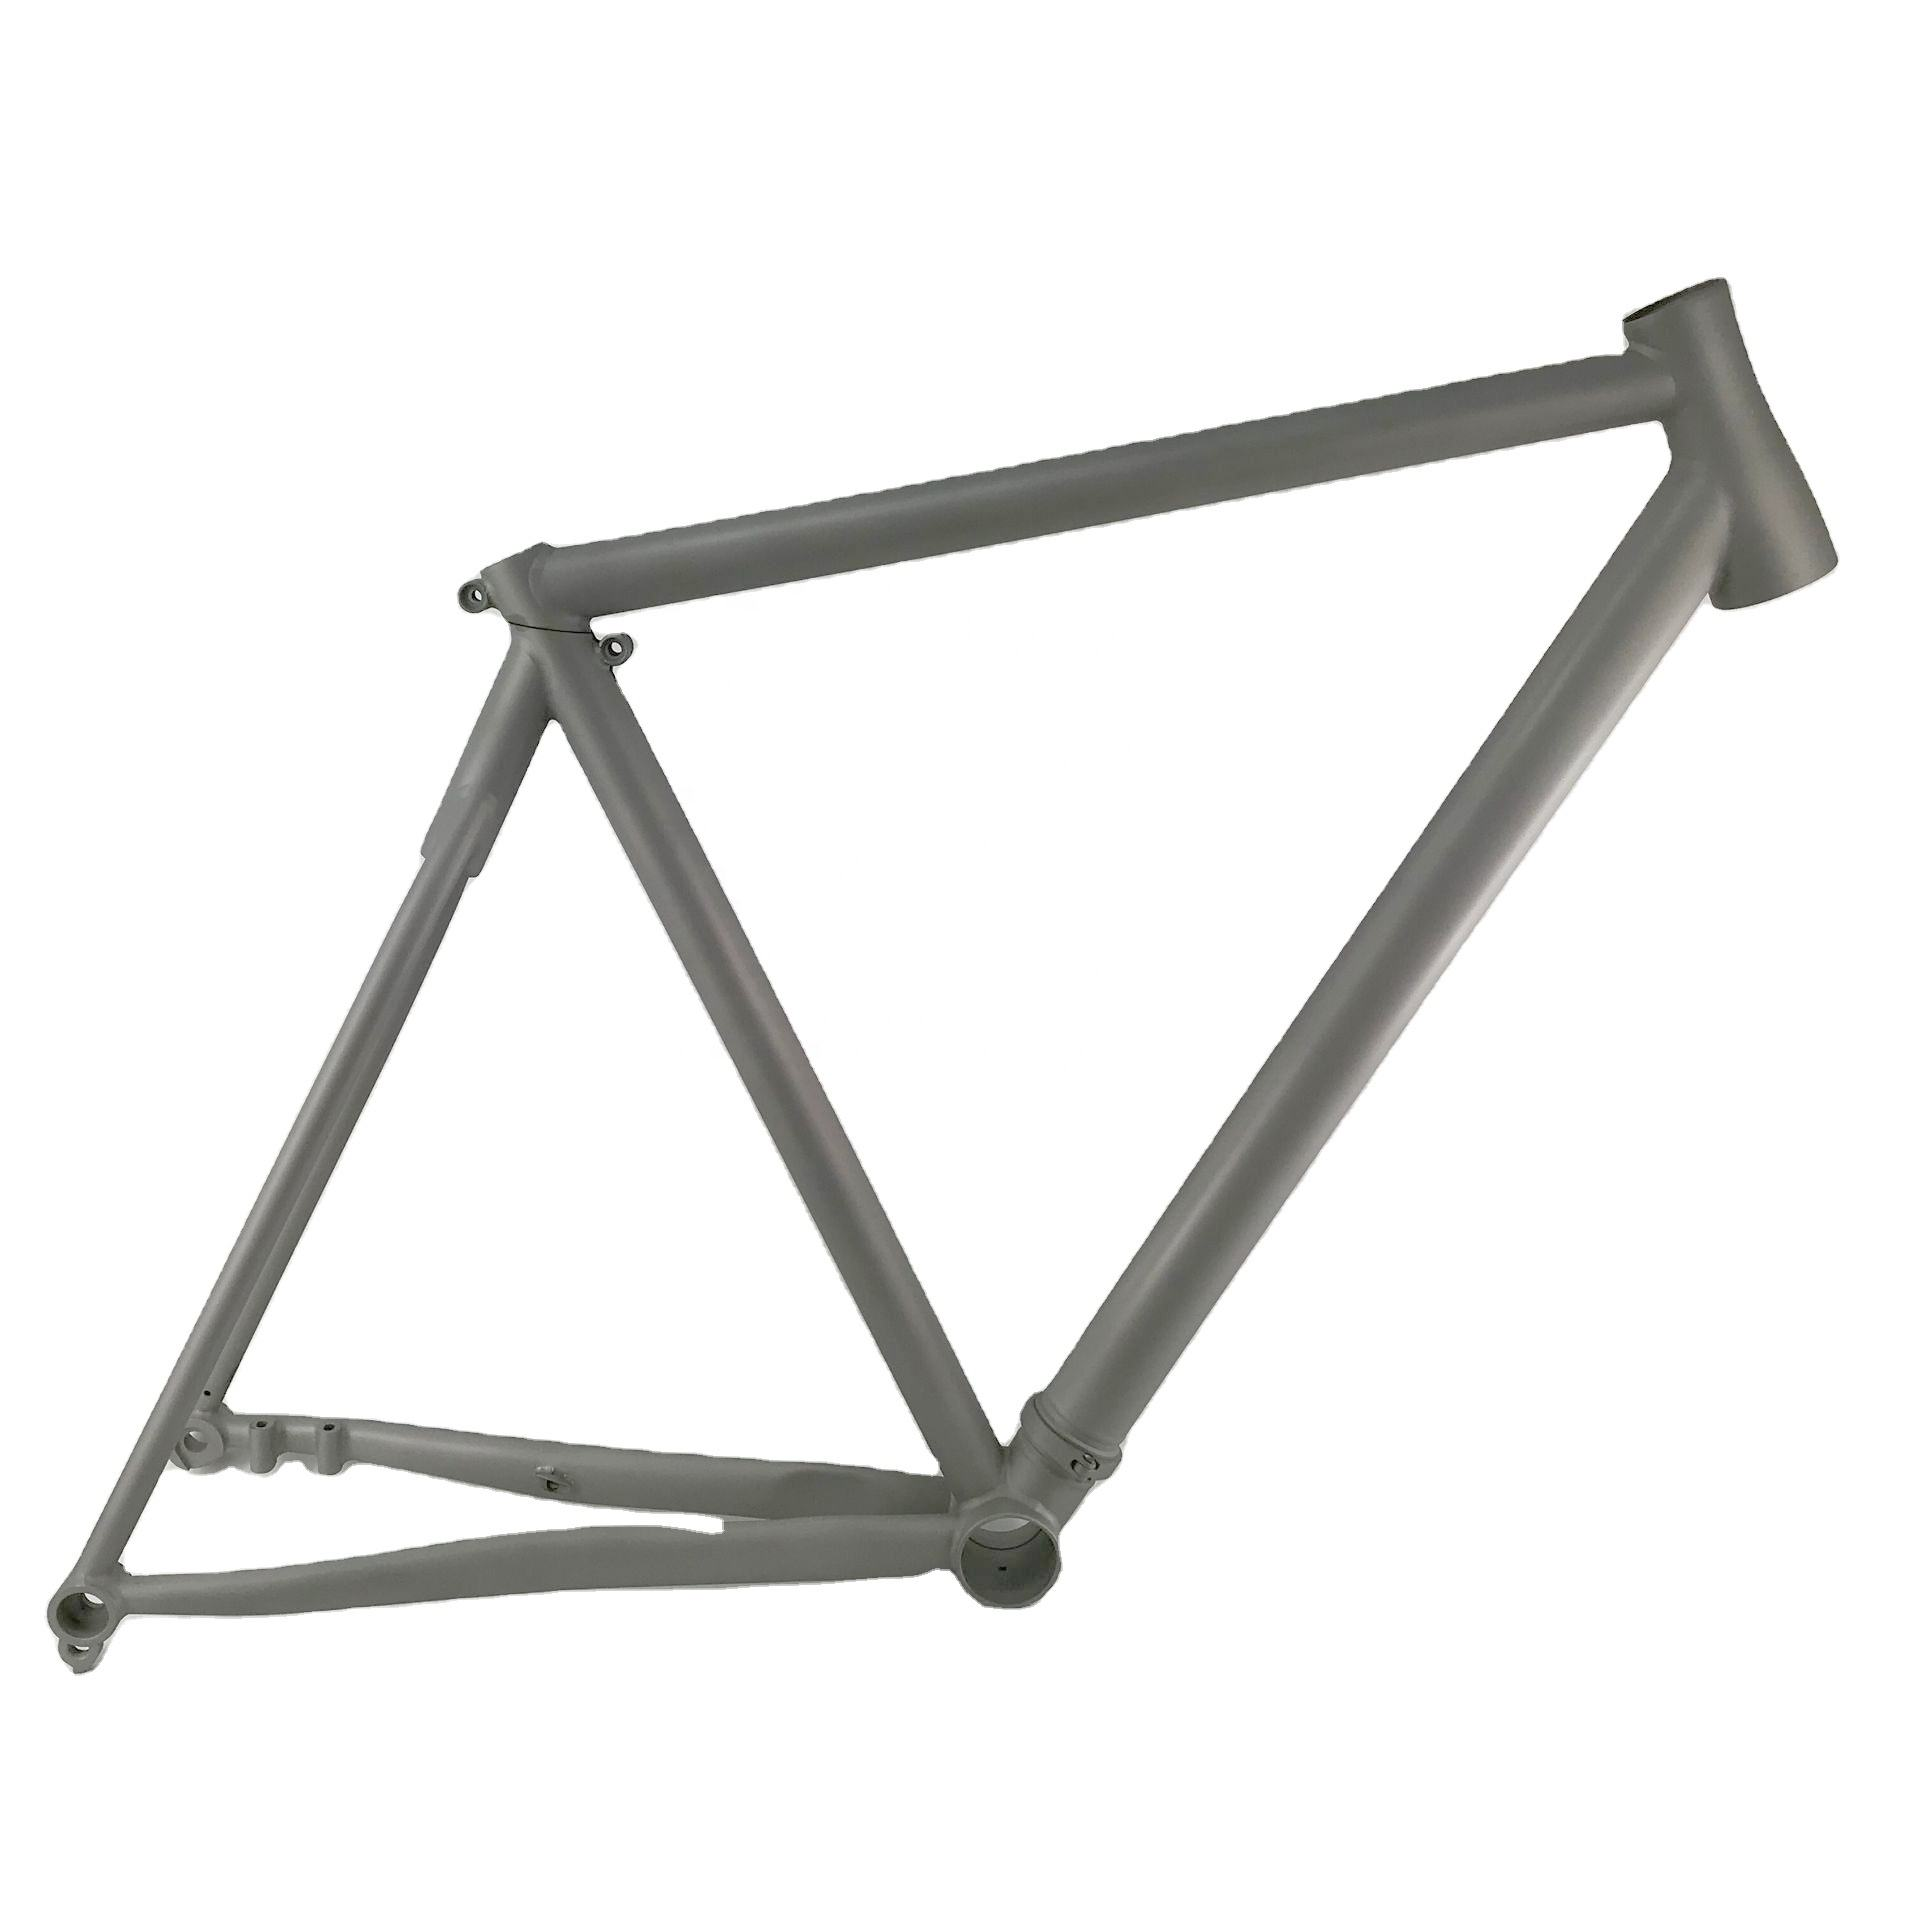 Gravel bicycle Titanium road bike frame with the breakaway system